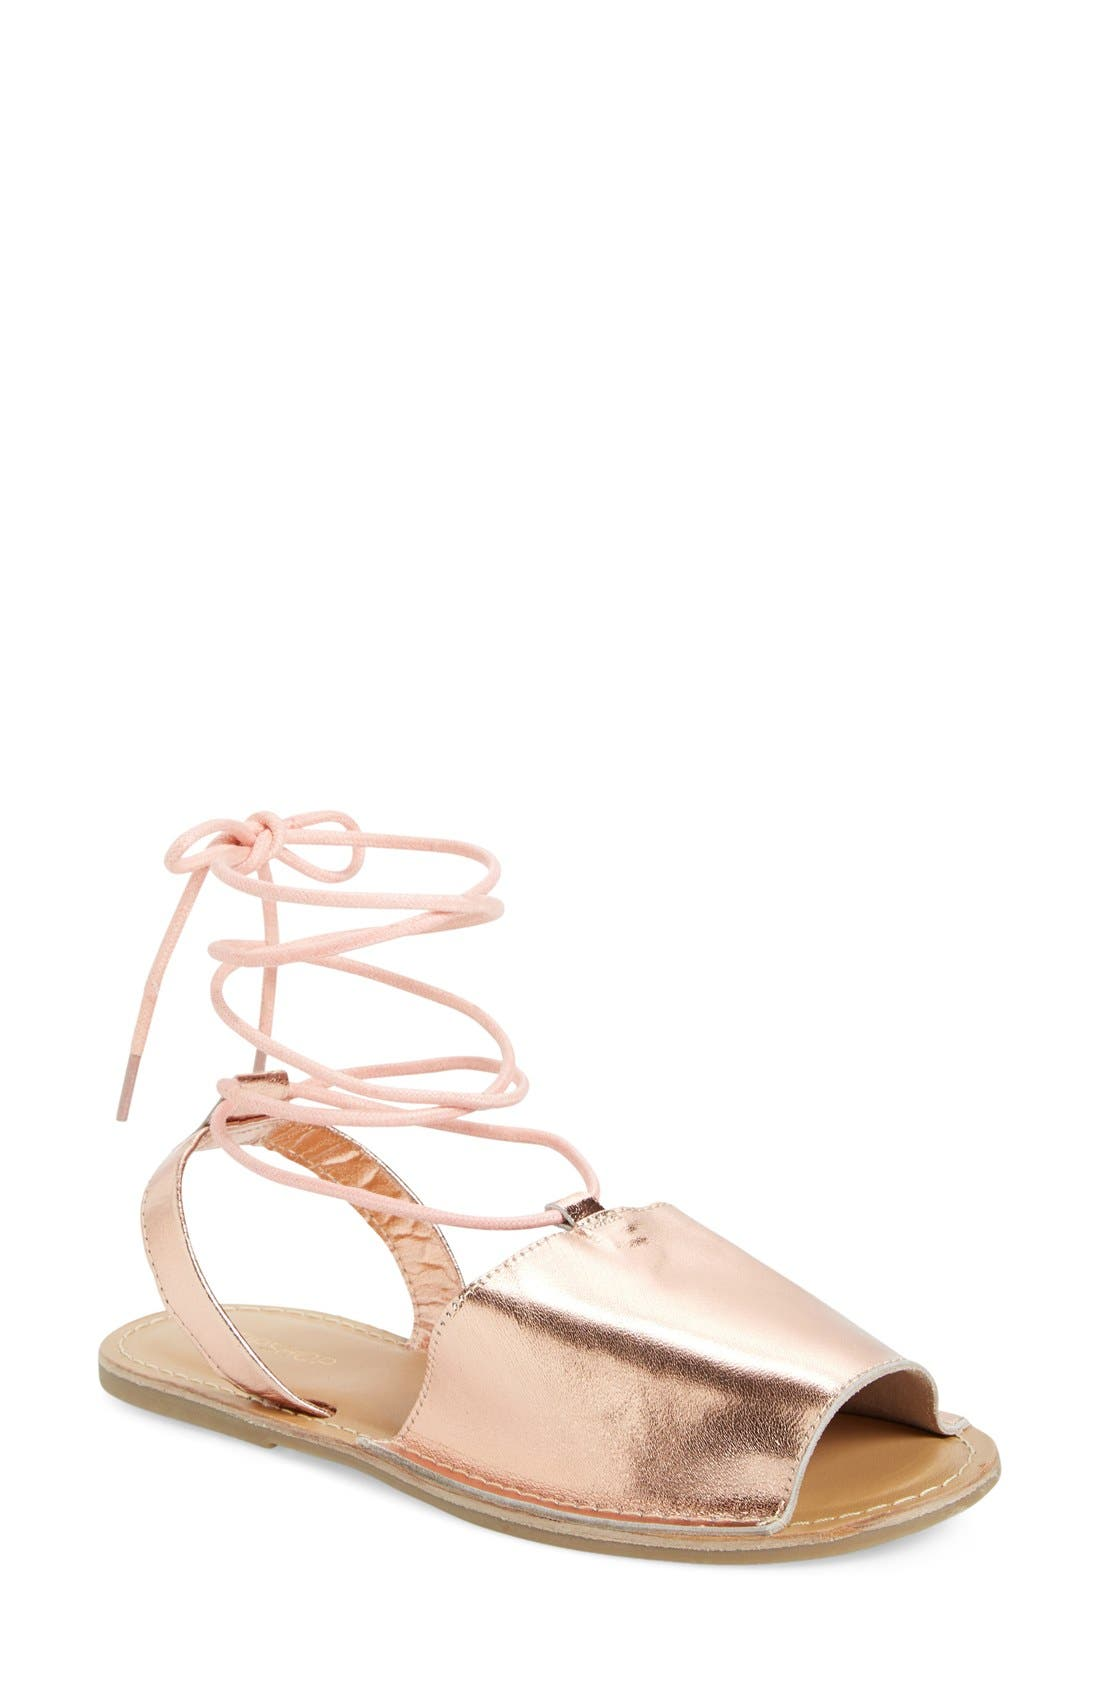 Main Image - Topshop 'Holly' Lace-Up Sandal (Women)